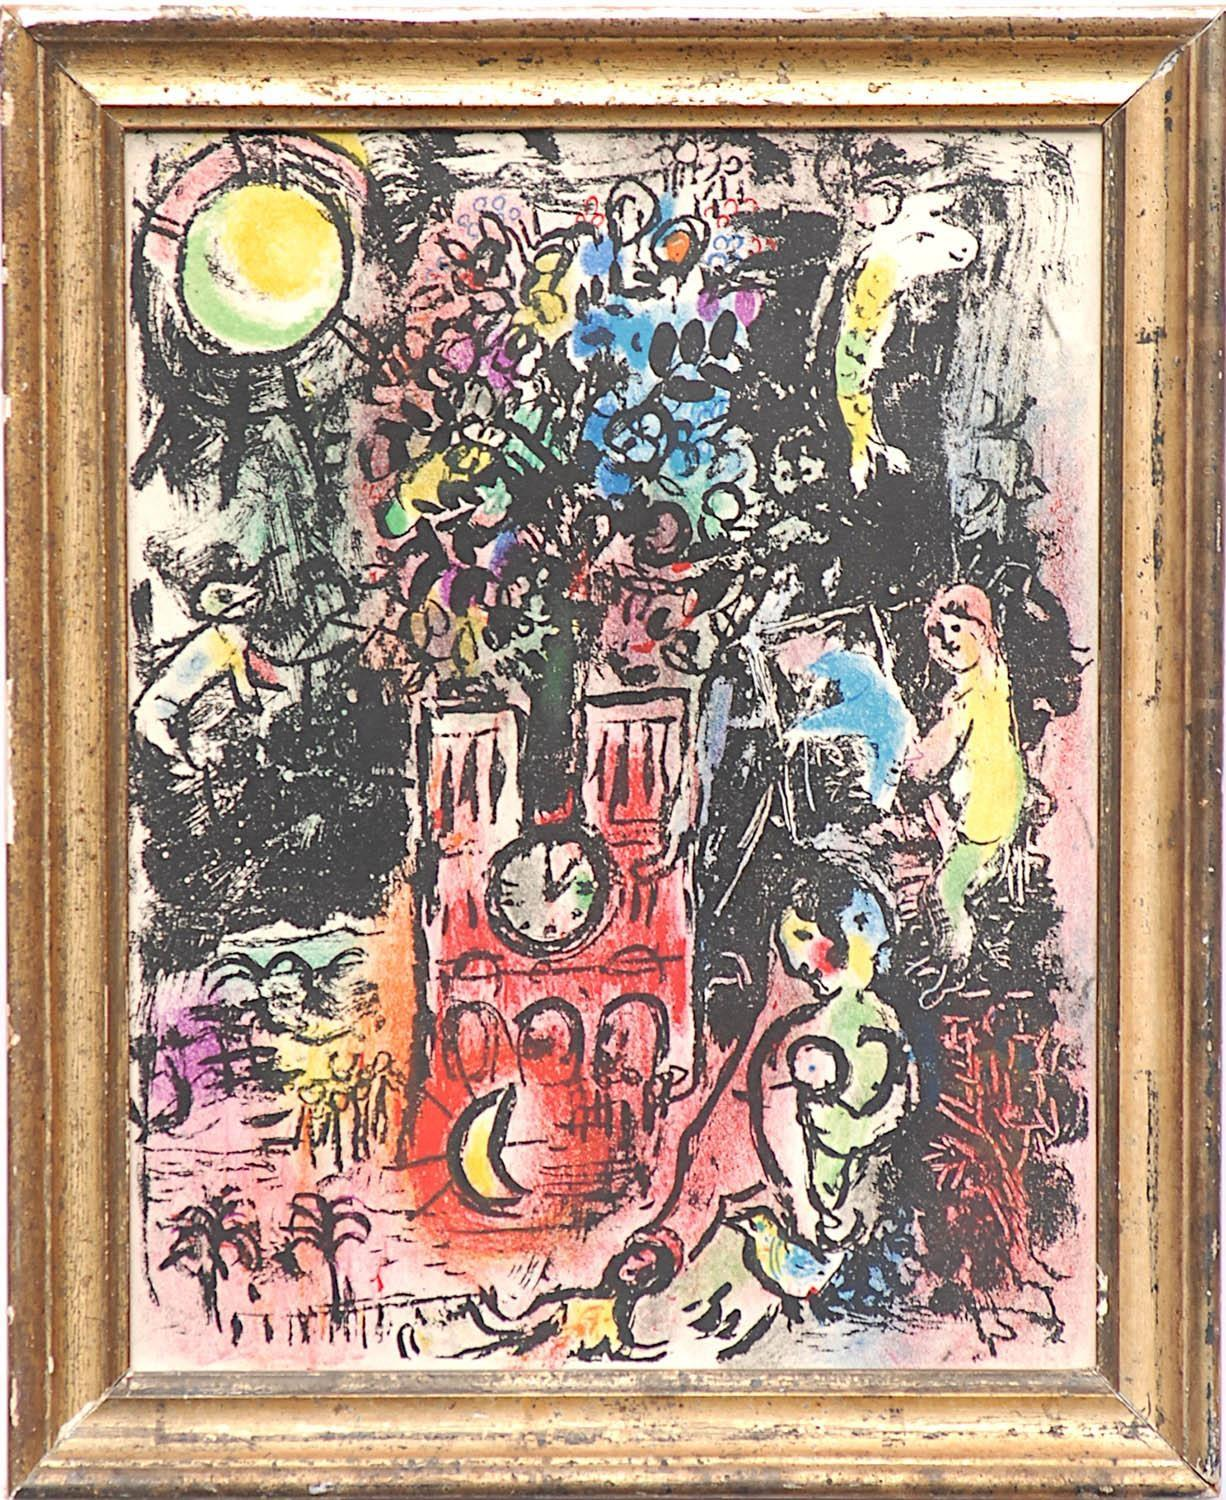 MARC CHAGALL 'The Tree of Jesse', 1960, original lithograph, printed by Maeght, 31cm x 24cm,